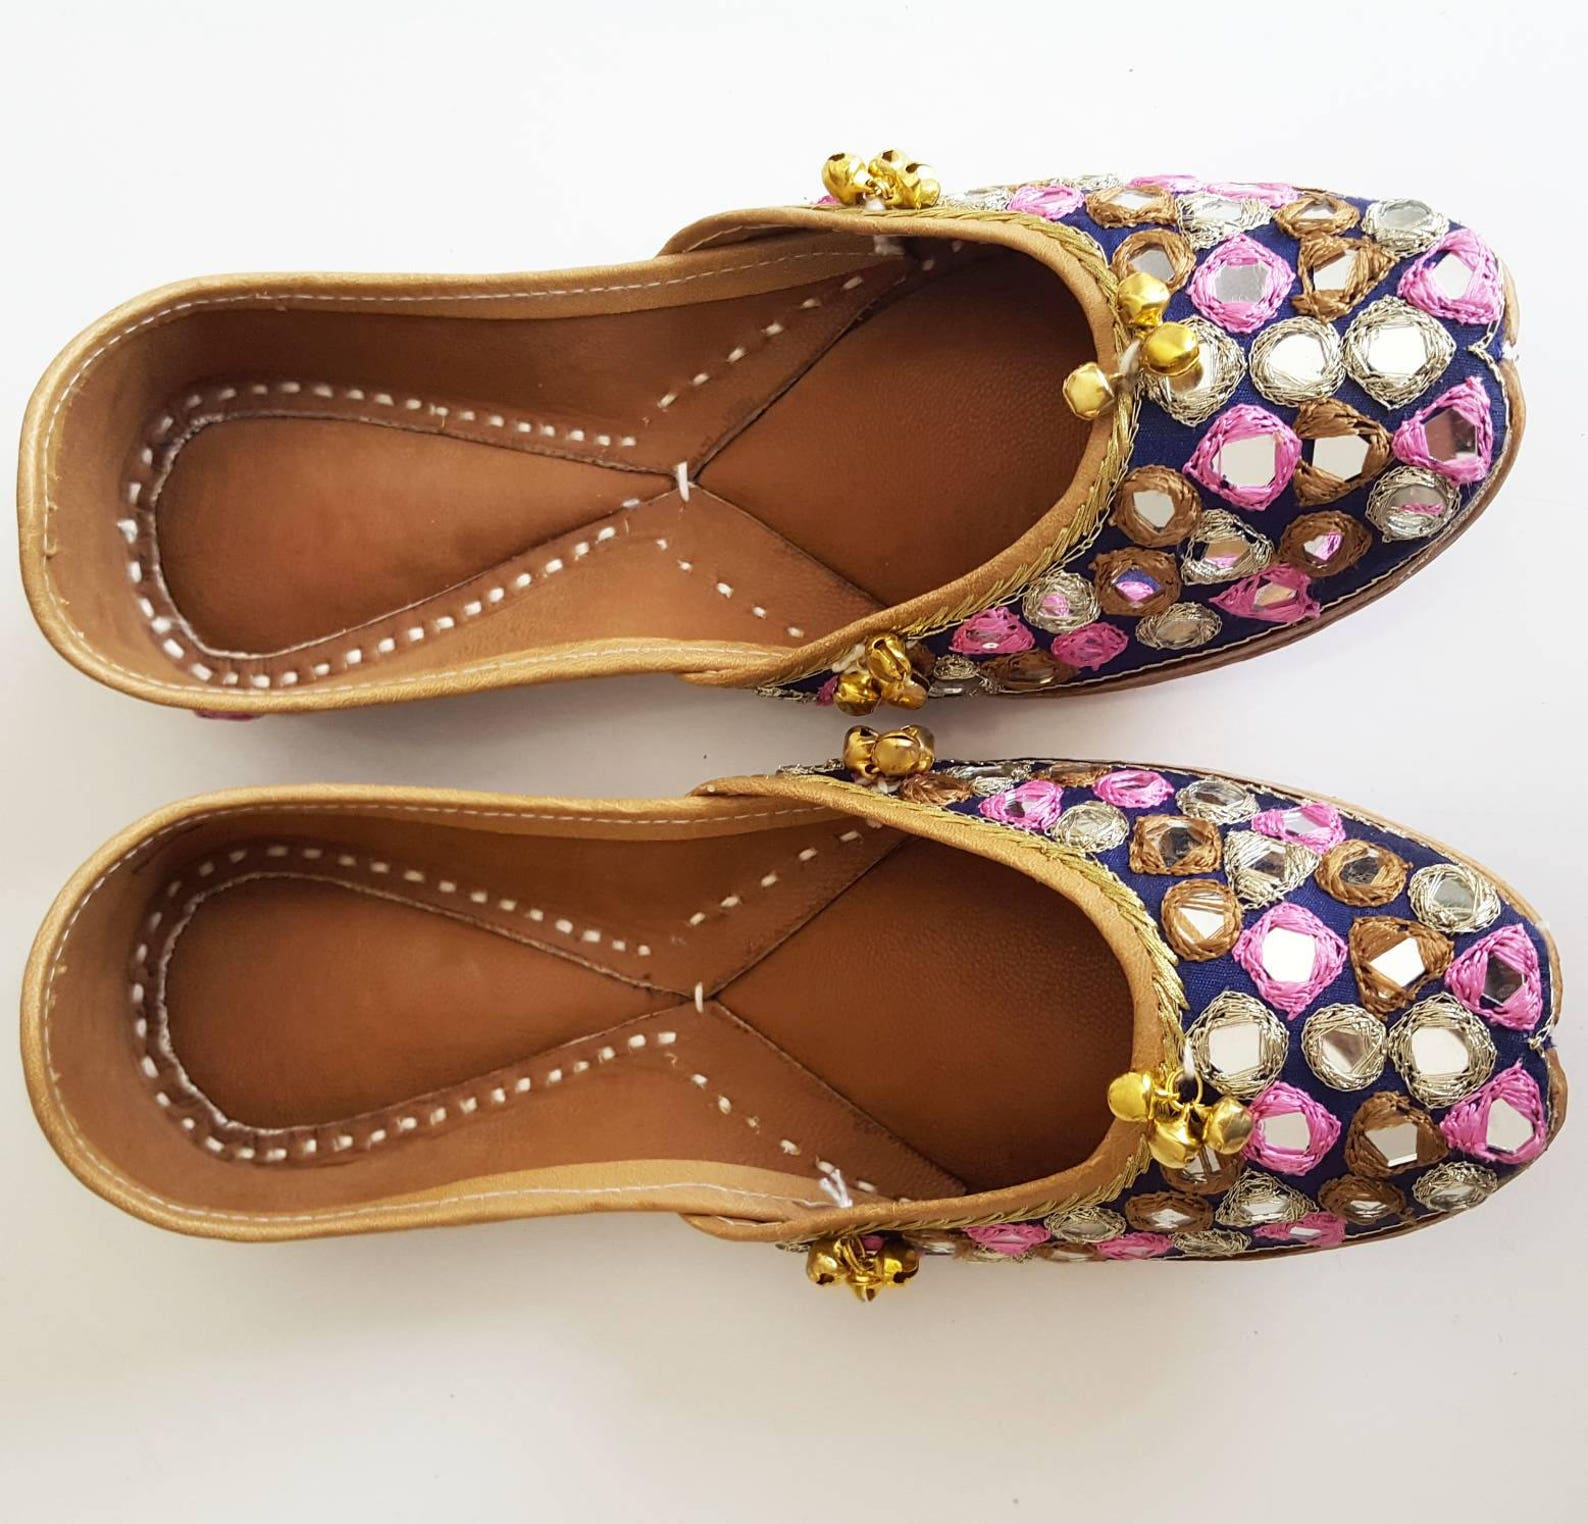 pink and navy blue punjabi jutti with mirrors and bells - slip on ballet flats with mirrors, blue ballet flats, indian jewlery,